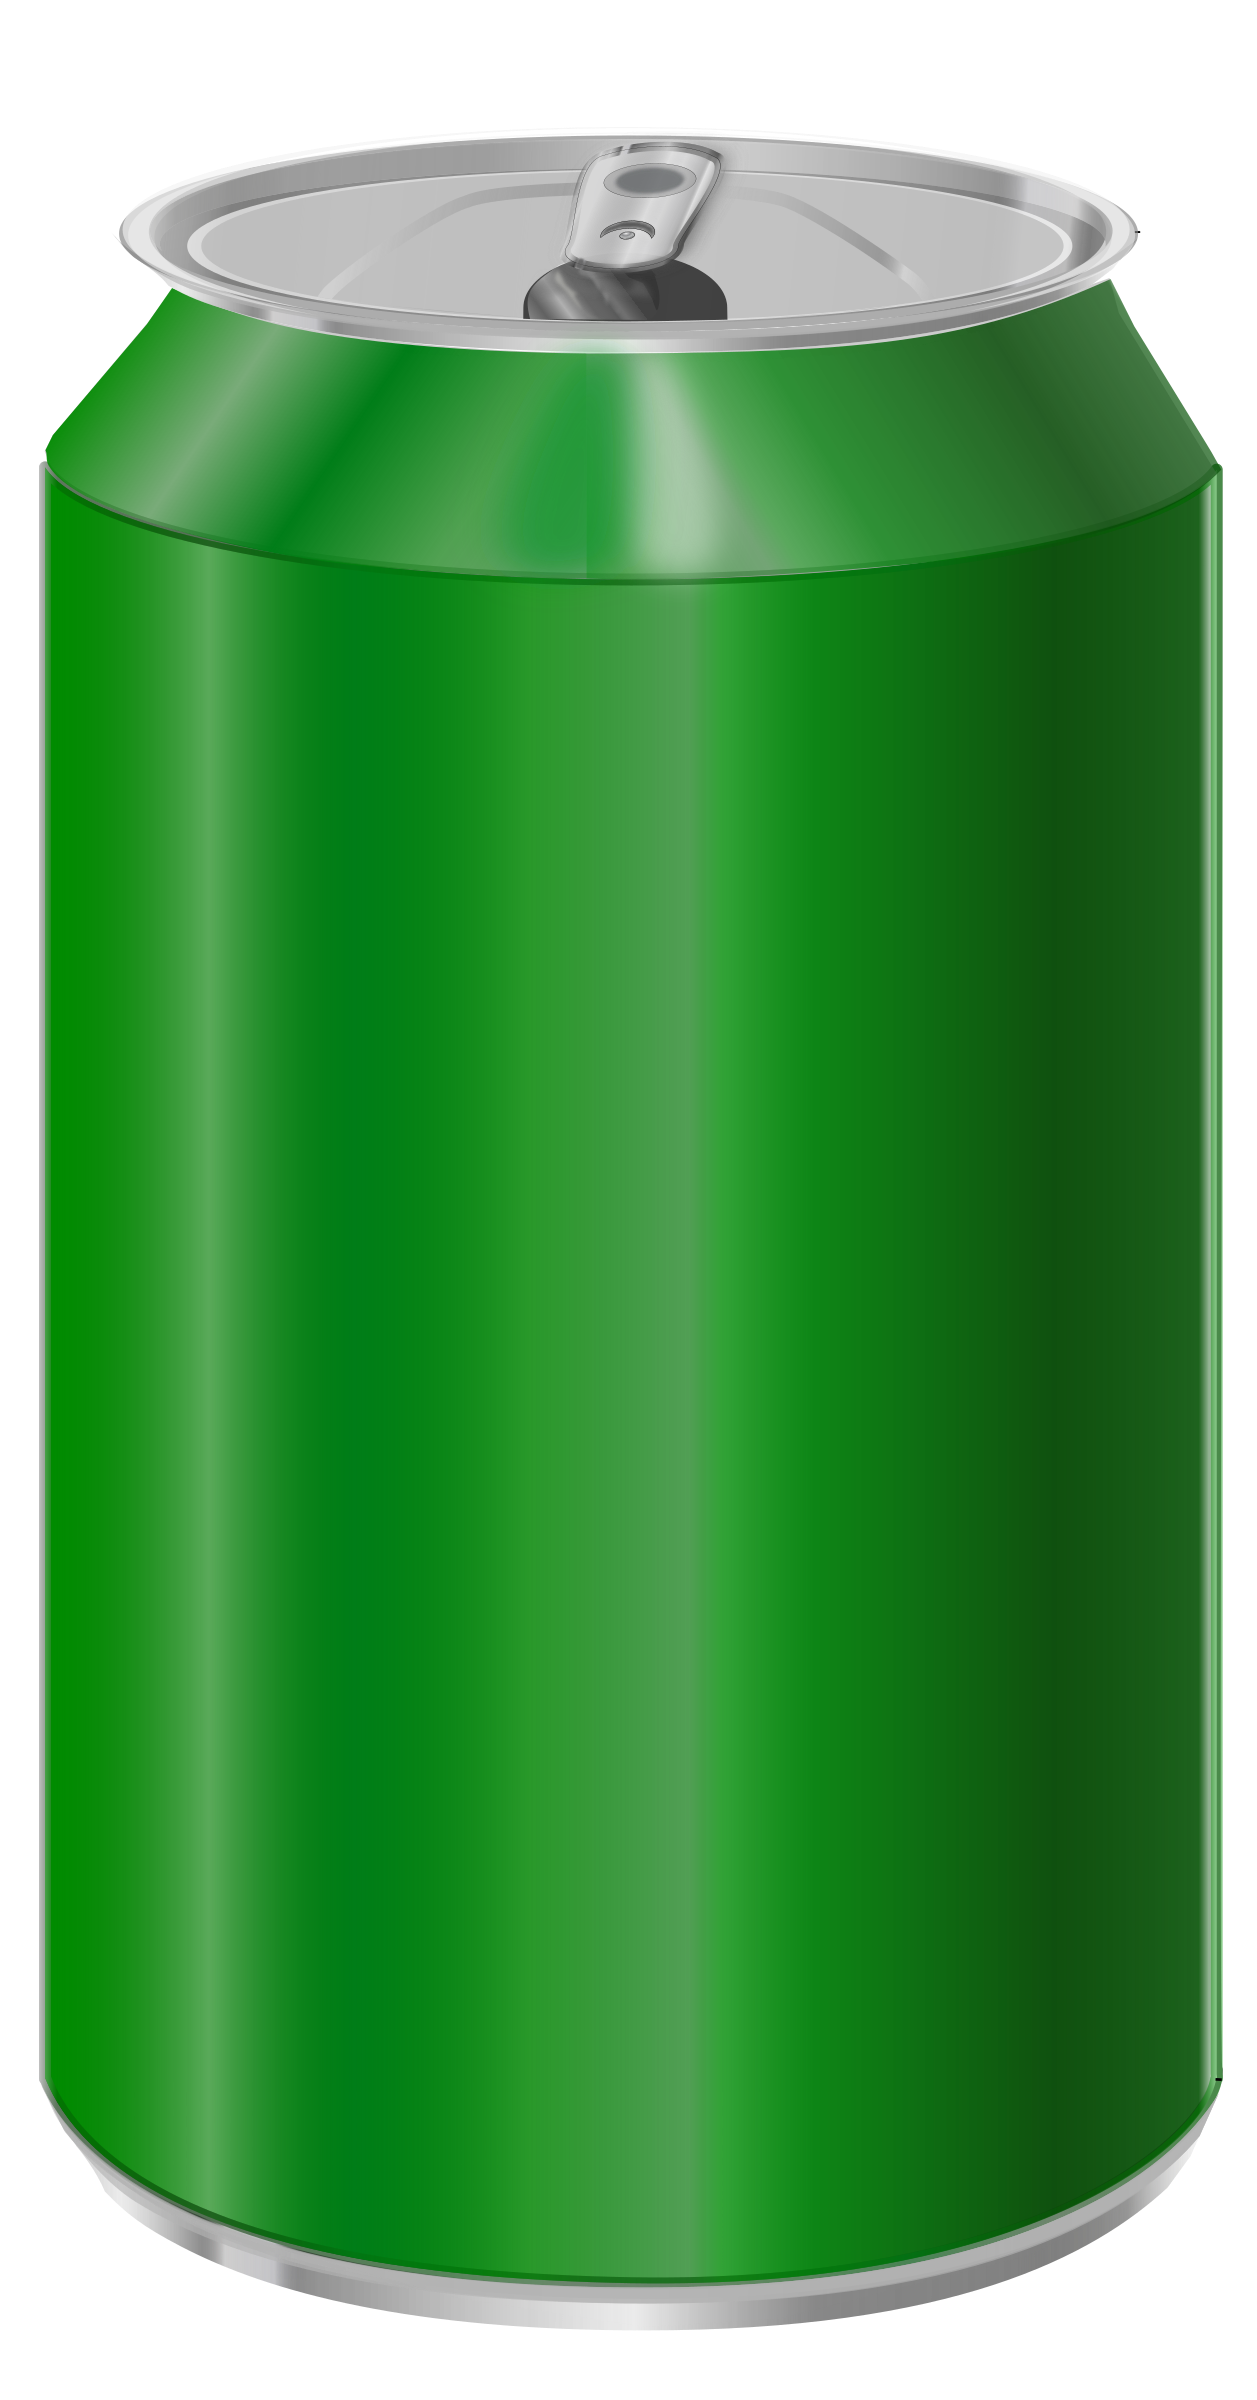 Green soda can by vectorscape